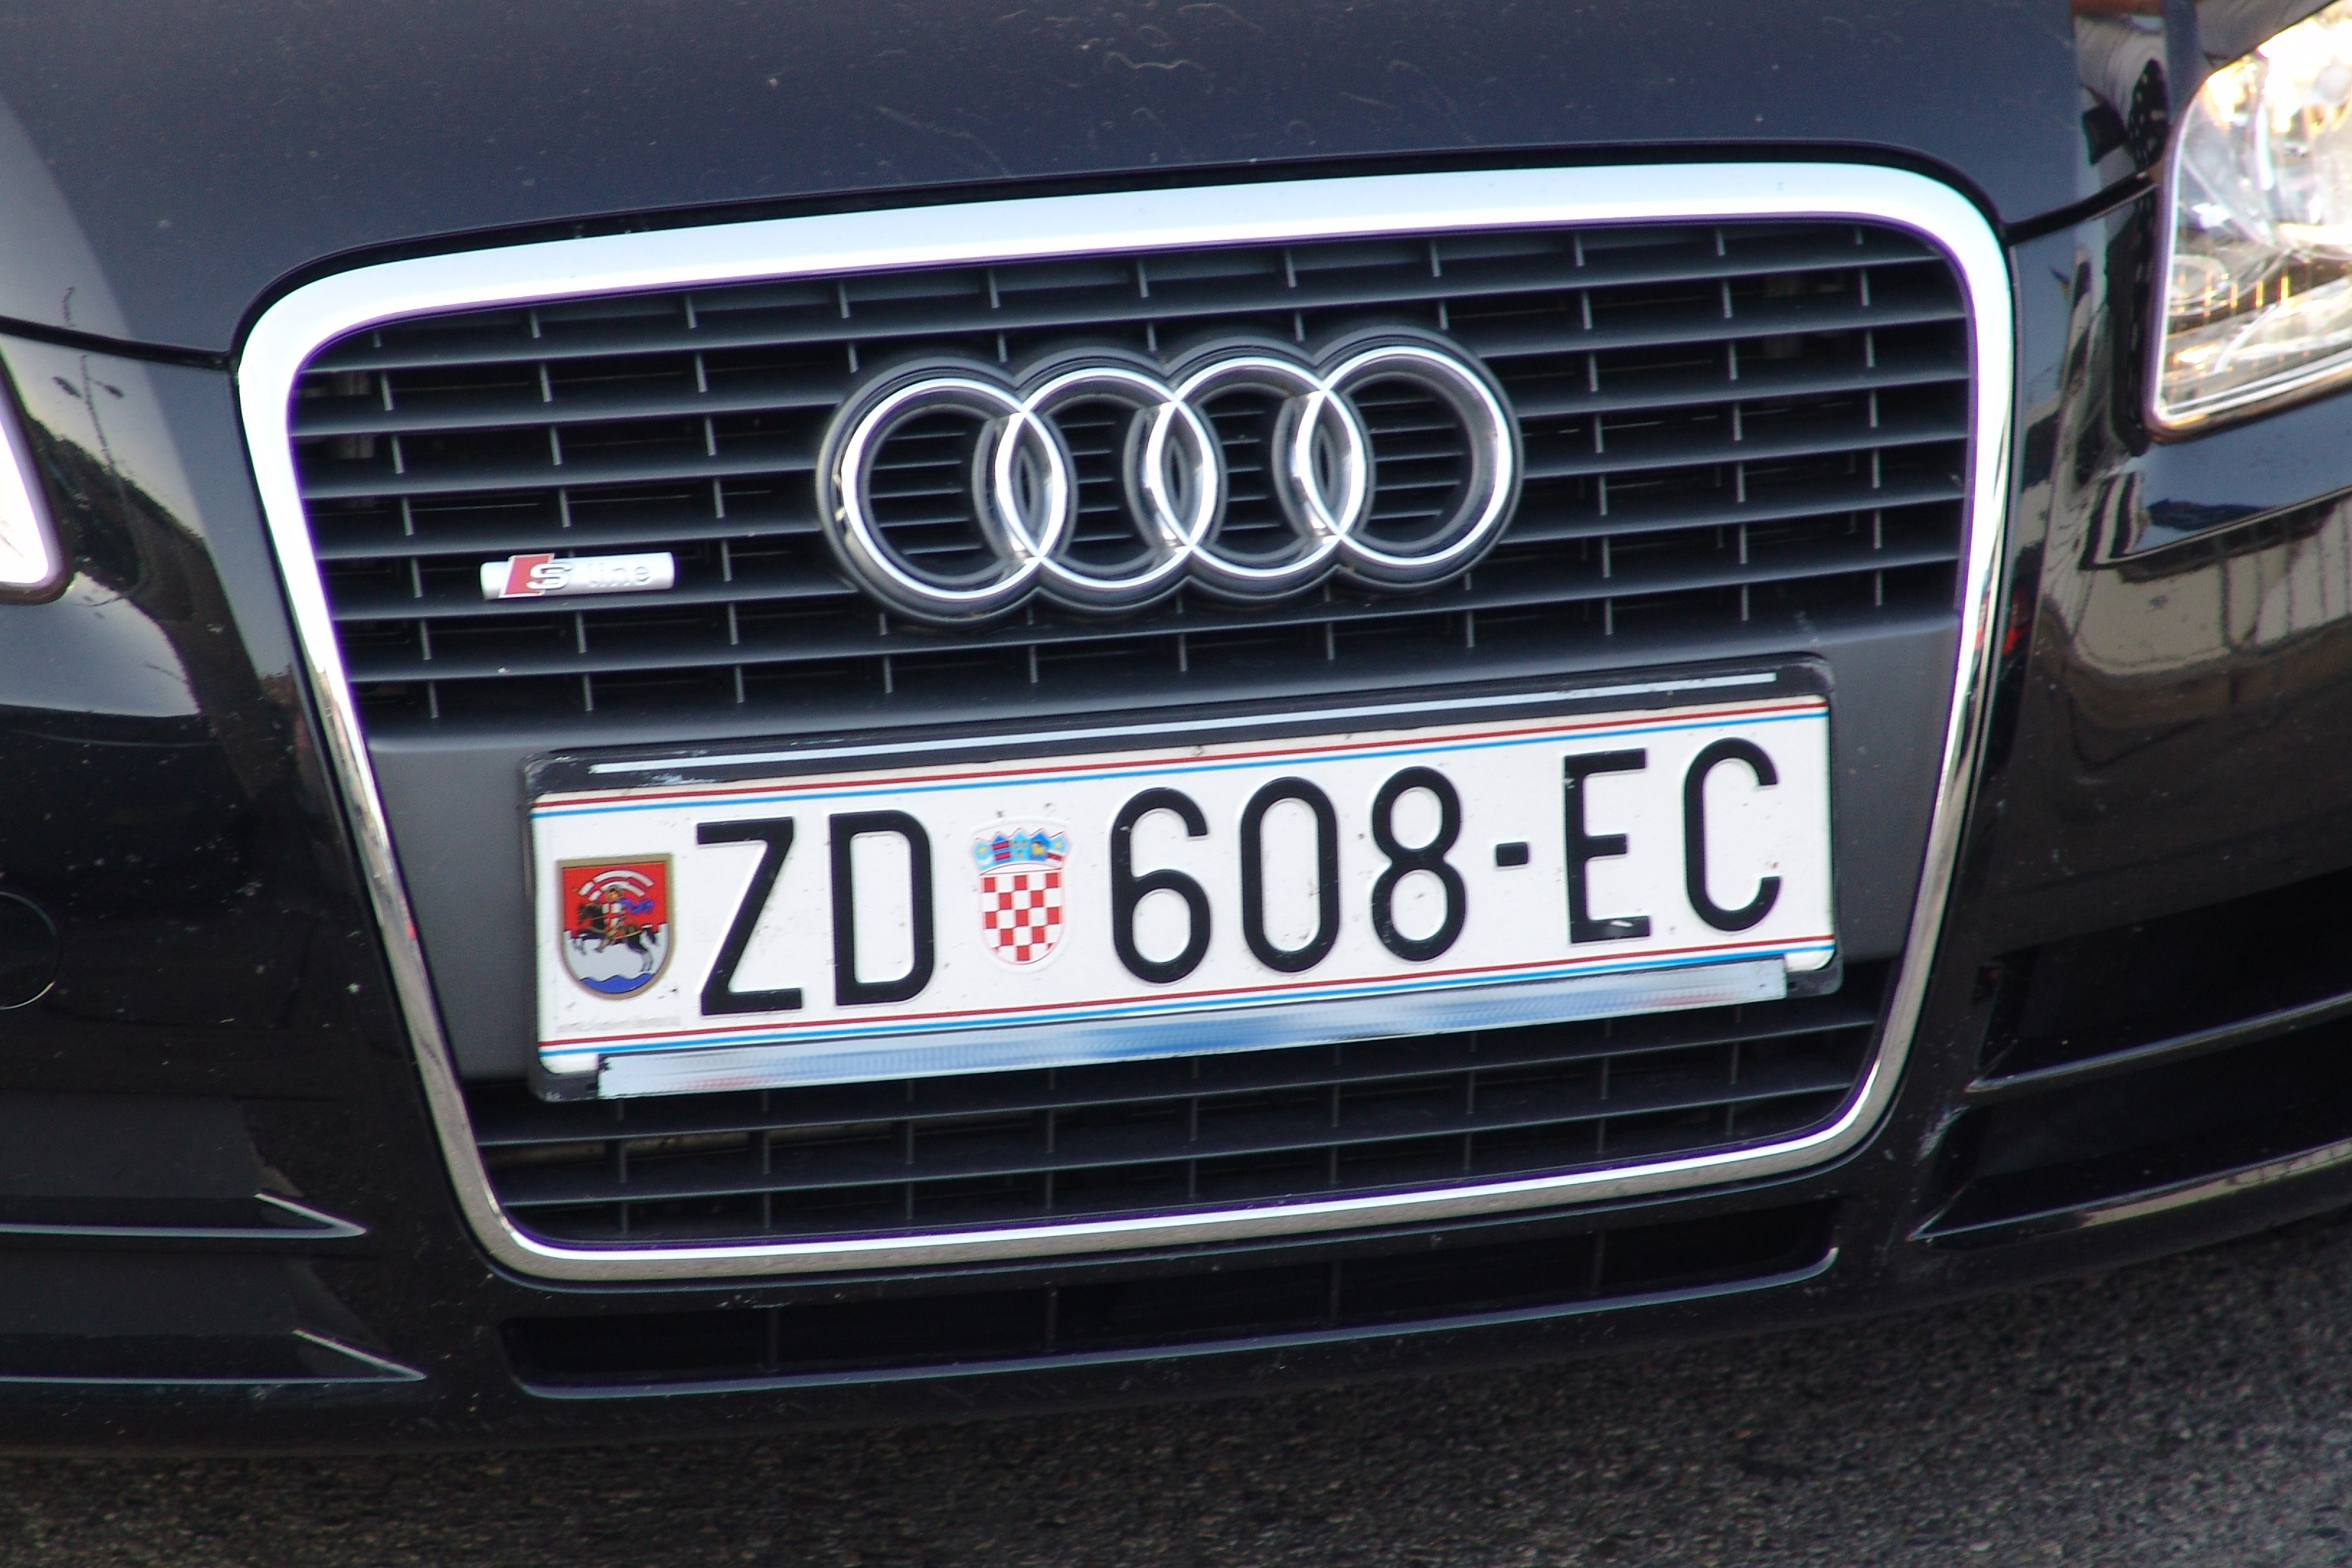 Vehicle registration plates of Croatia